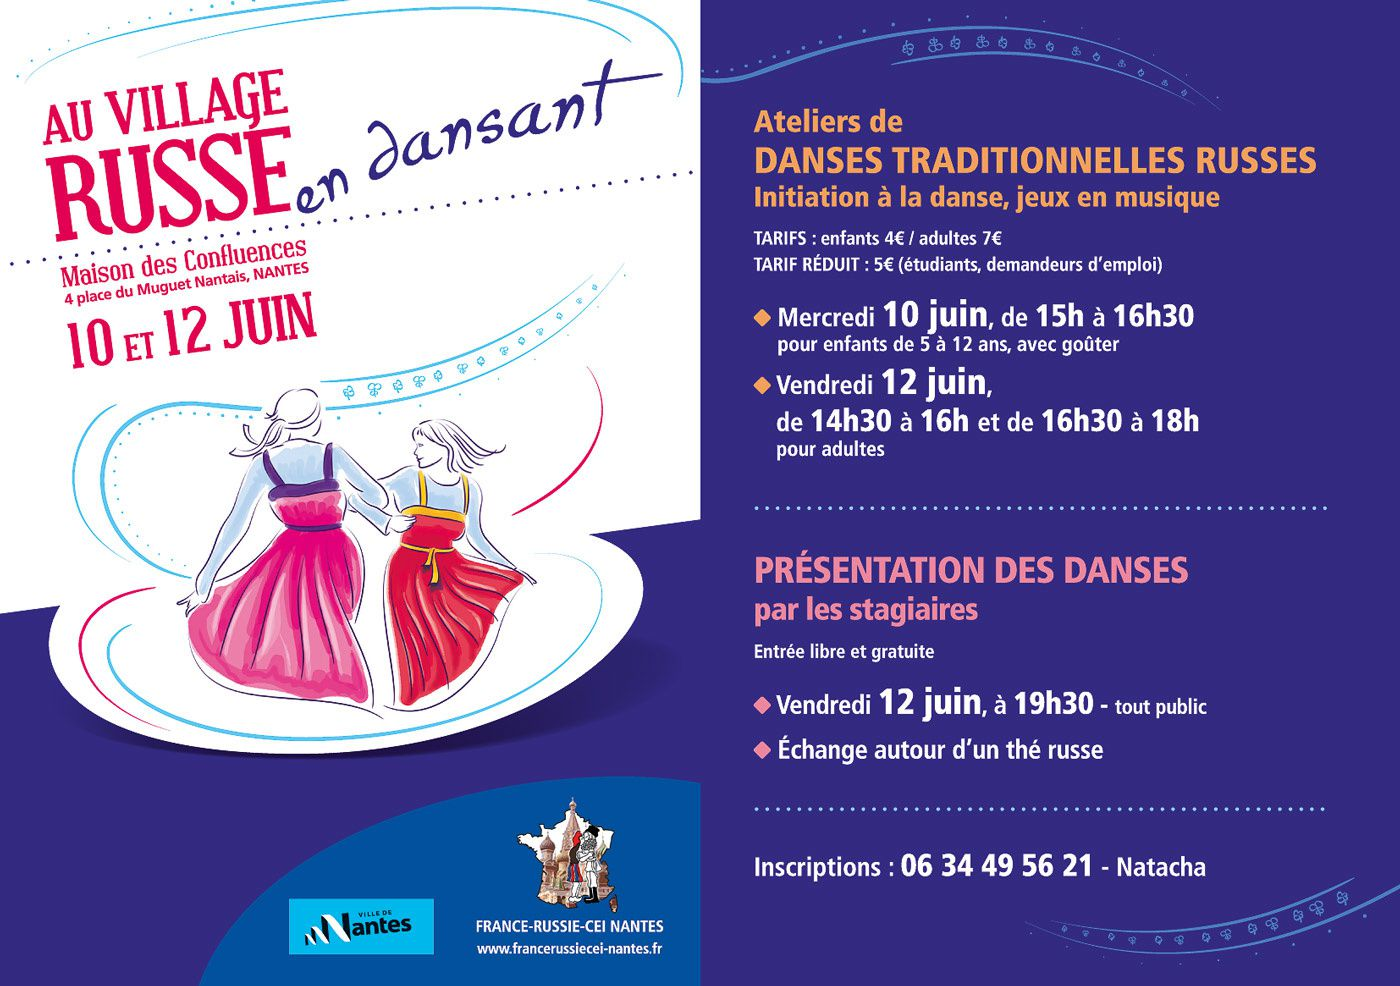 Ateliers de danses traditionnelles russes